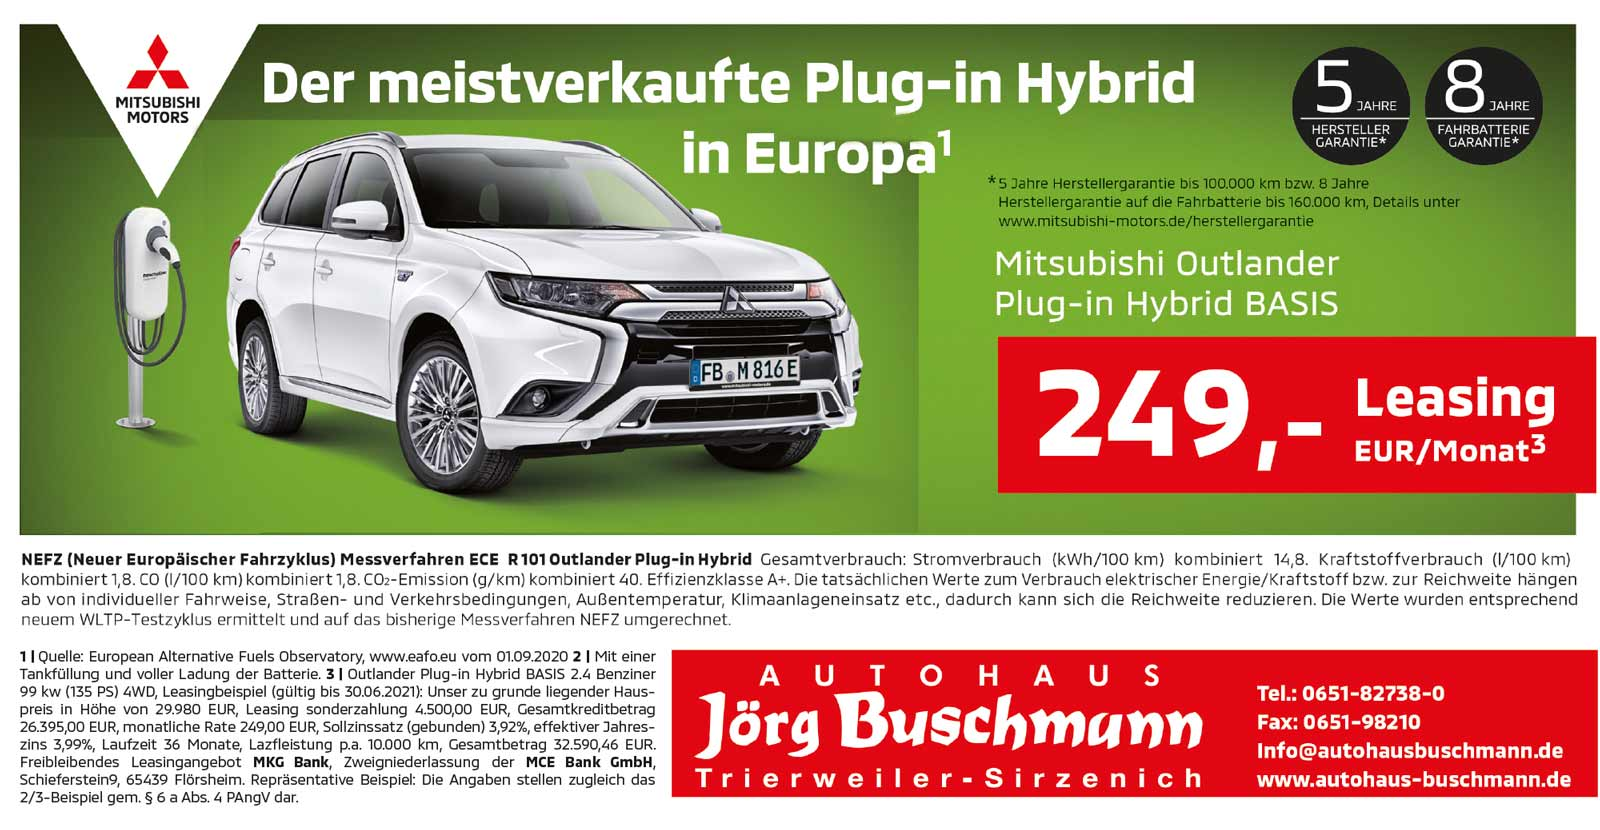 Mitsubishi Plu-In Hybrid Aktion Leasing